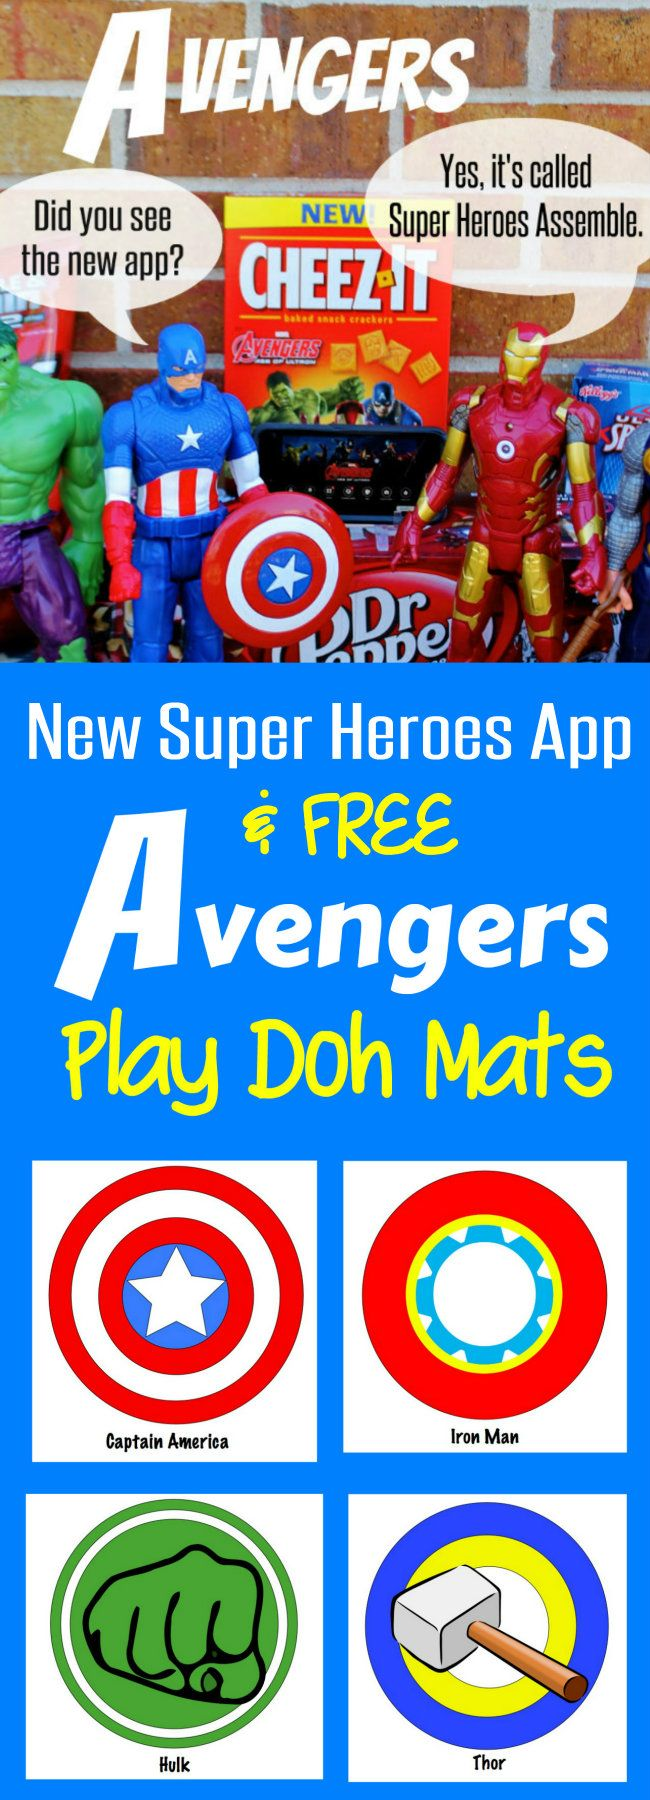 New Super Heroes Assemble App and FREE Avengers Play Doh Mats from HappyandBlessedHome.com plus enter to WIN $4,500 in Prizes #AvengersUnite #CollectiveBias #Ad, Superheroes, Captain America, Hulk, Thor, and Iron Man; Avengers Printables great for Avengers Birthday Party or Avengers Movie Party